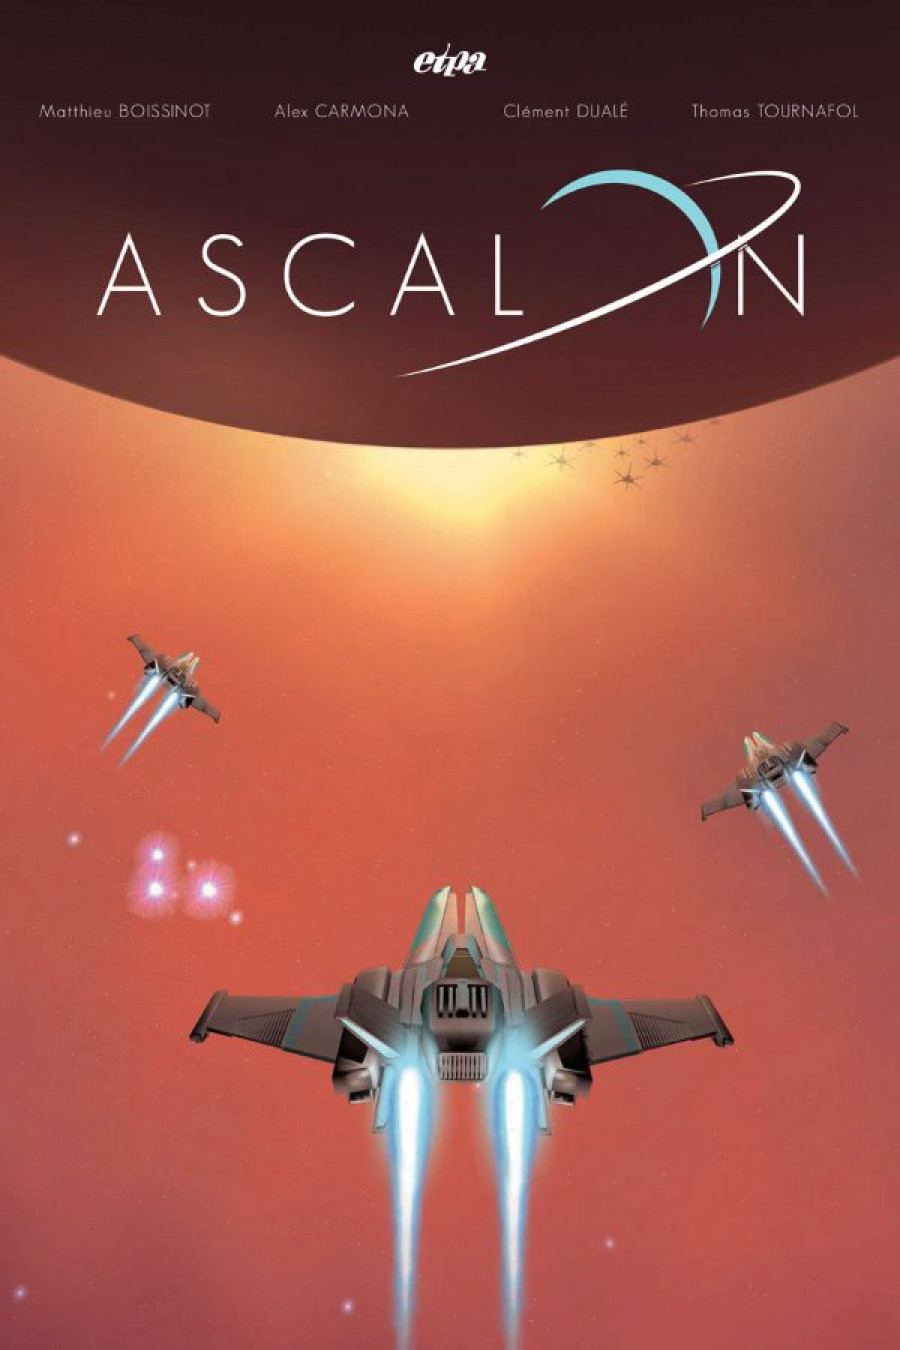 Ascalon jeu video etpa